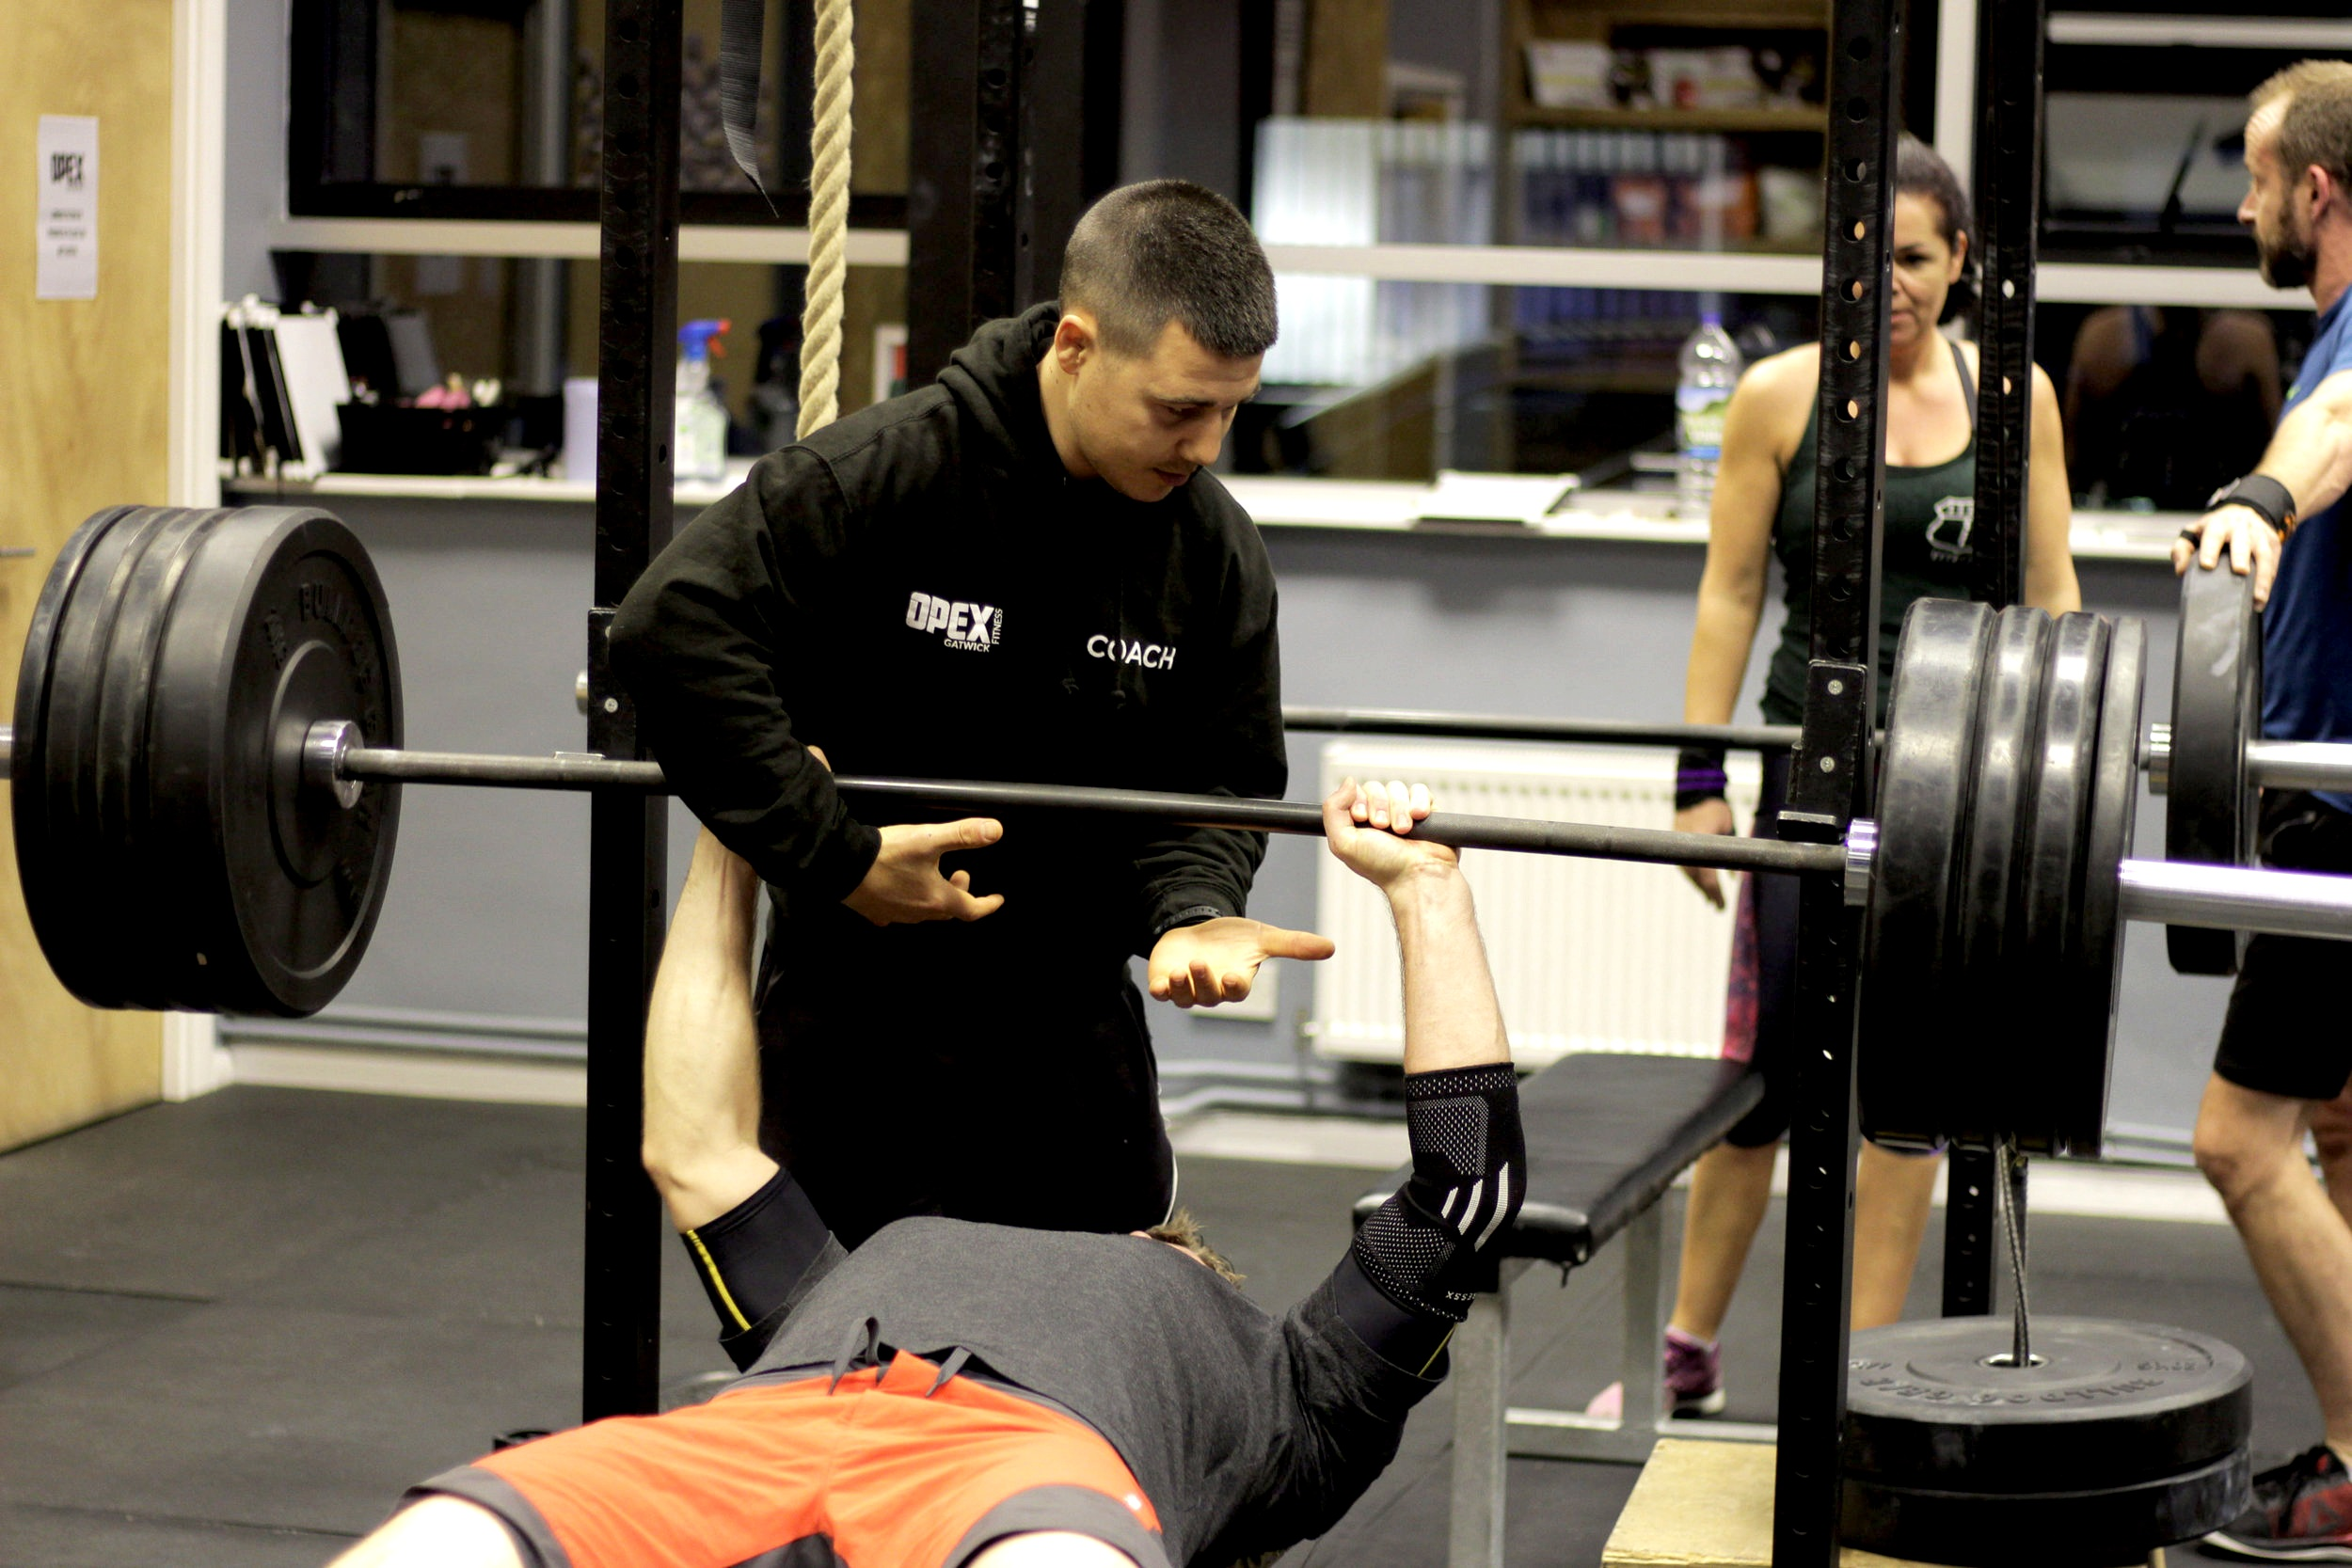 Personal Trainer Kris spotting during bench press